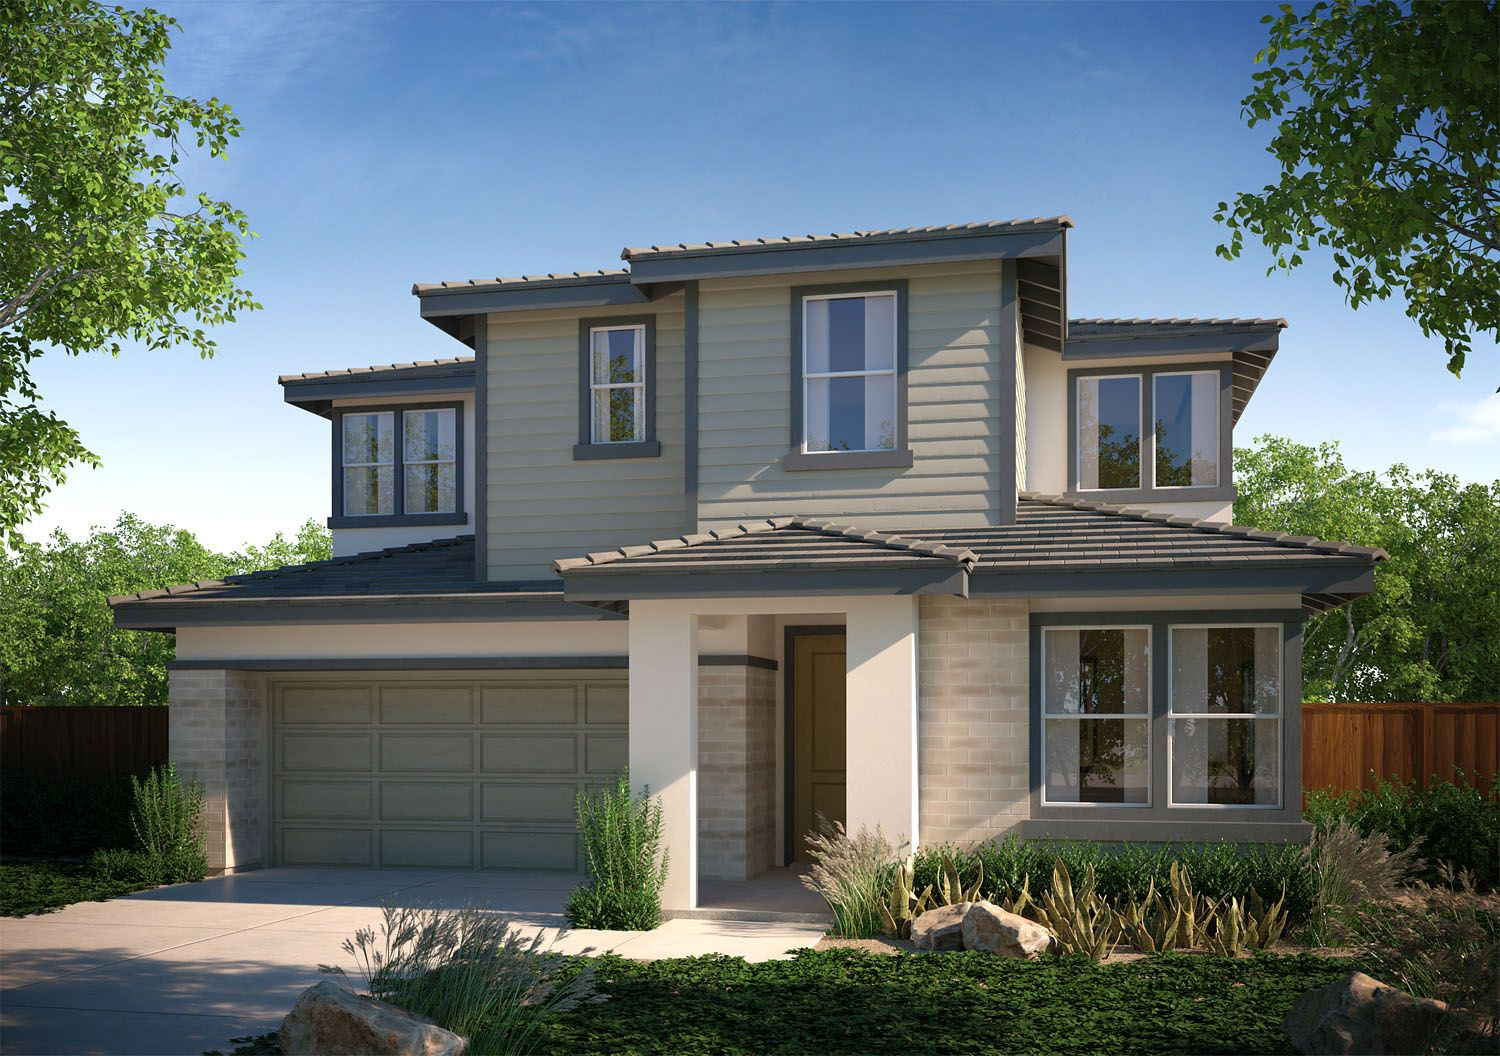 Photo of Cresleigh Domain in Folsom, CA 95630